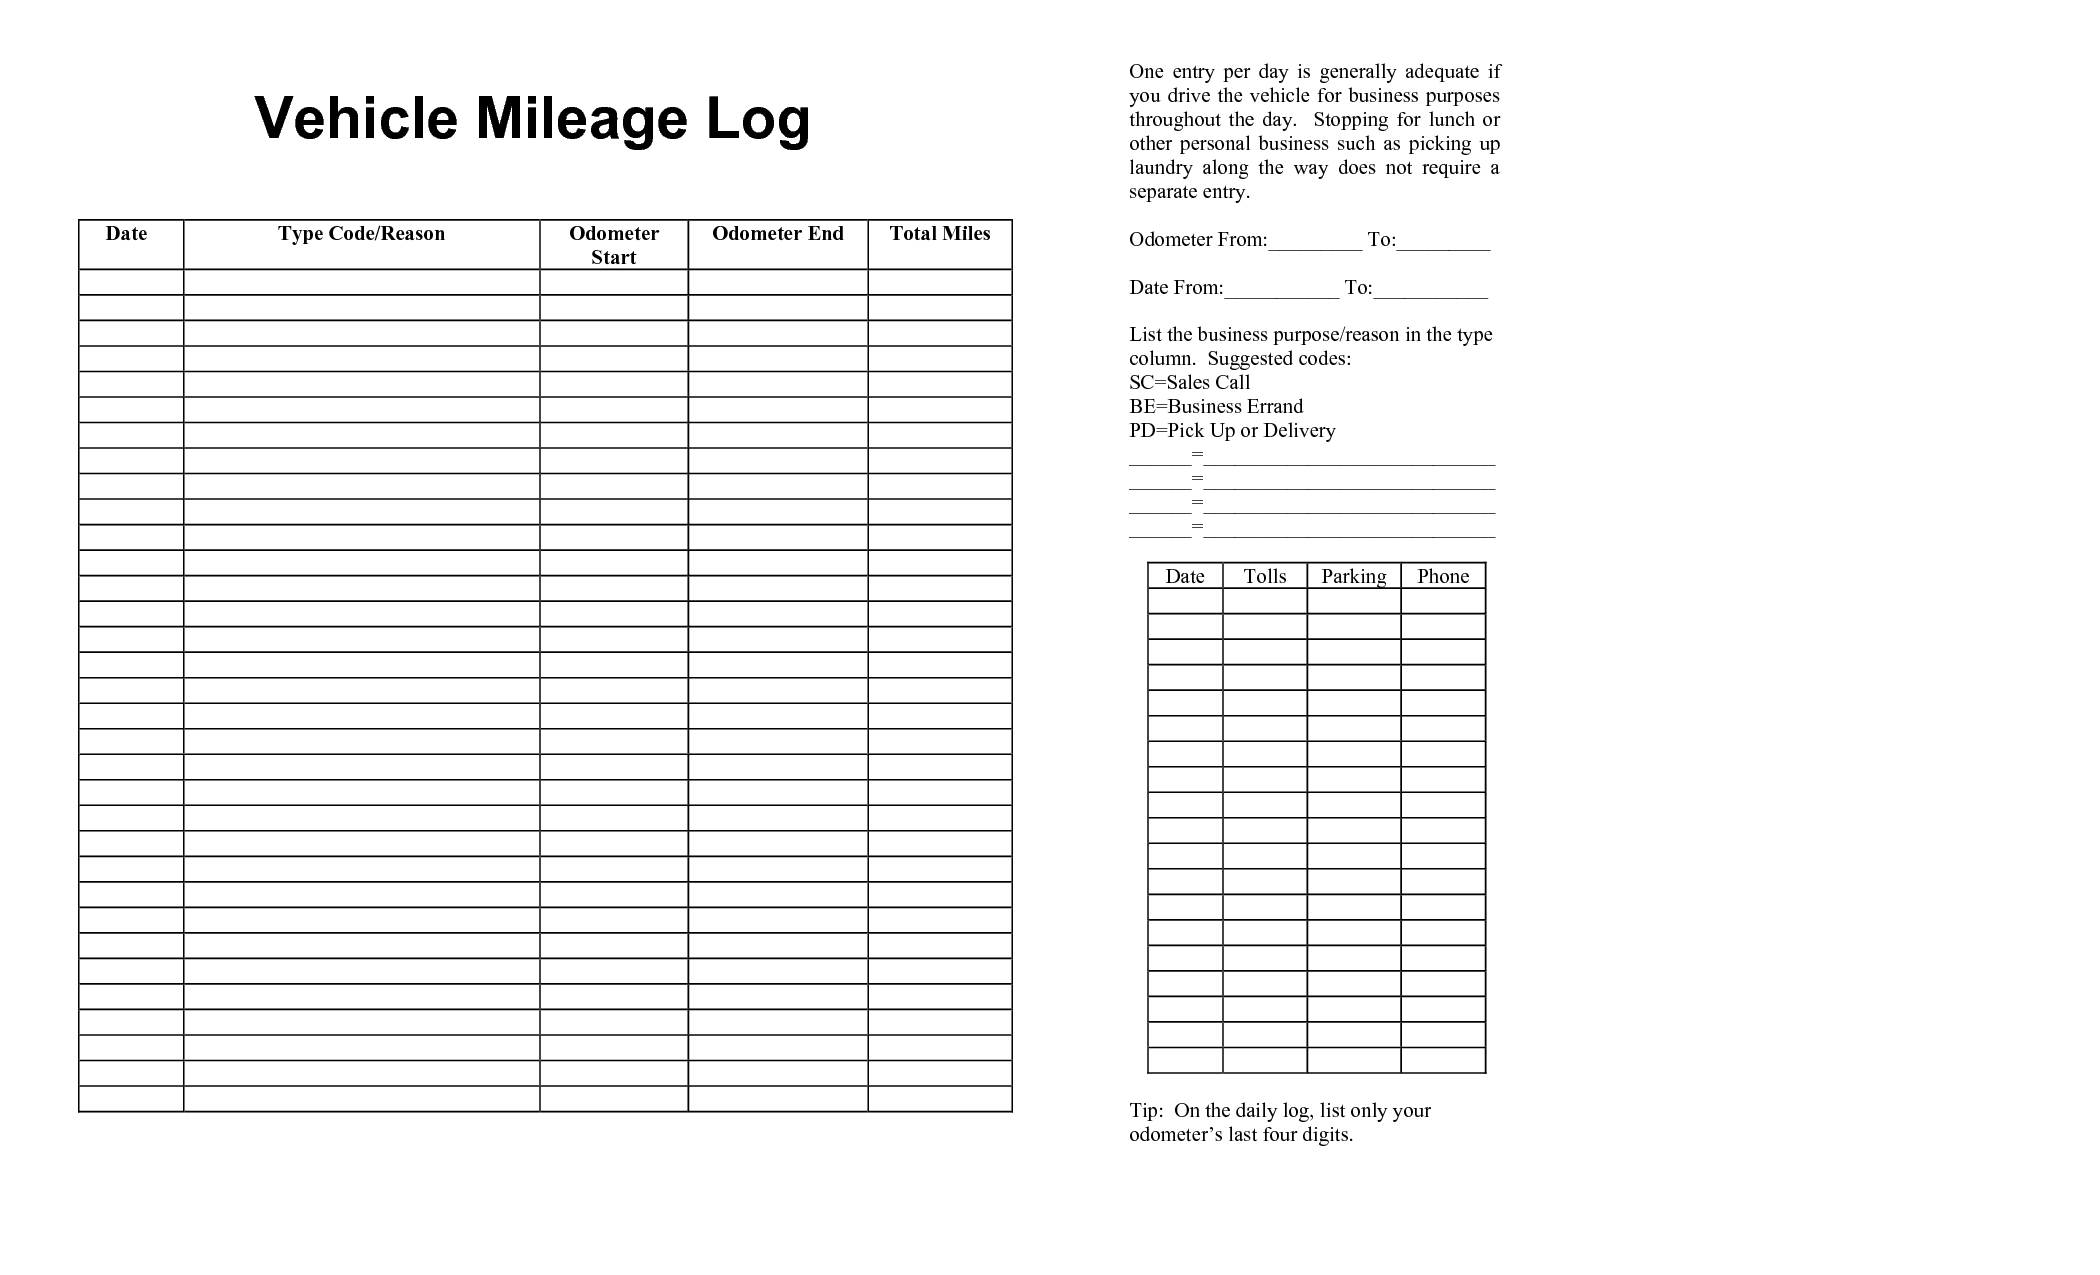 Vehicle Mileage Log Template 630954